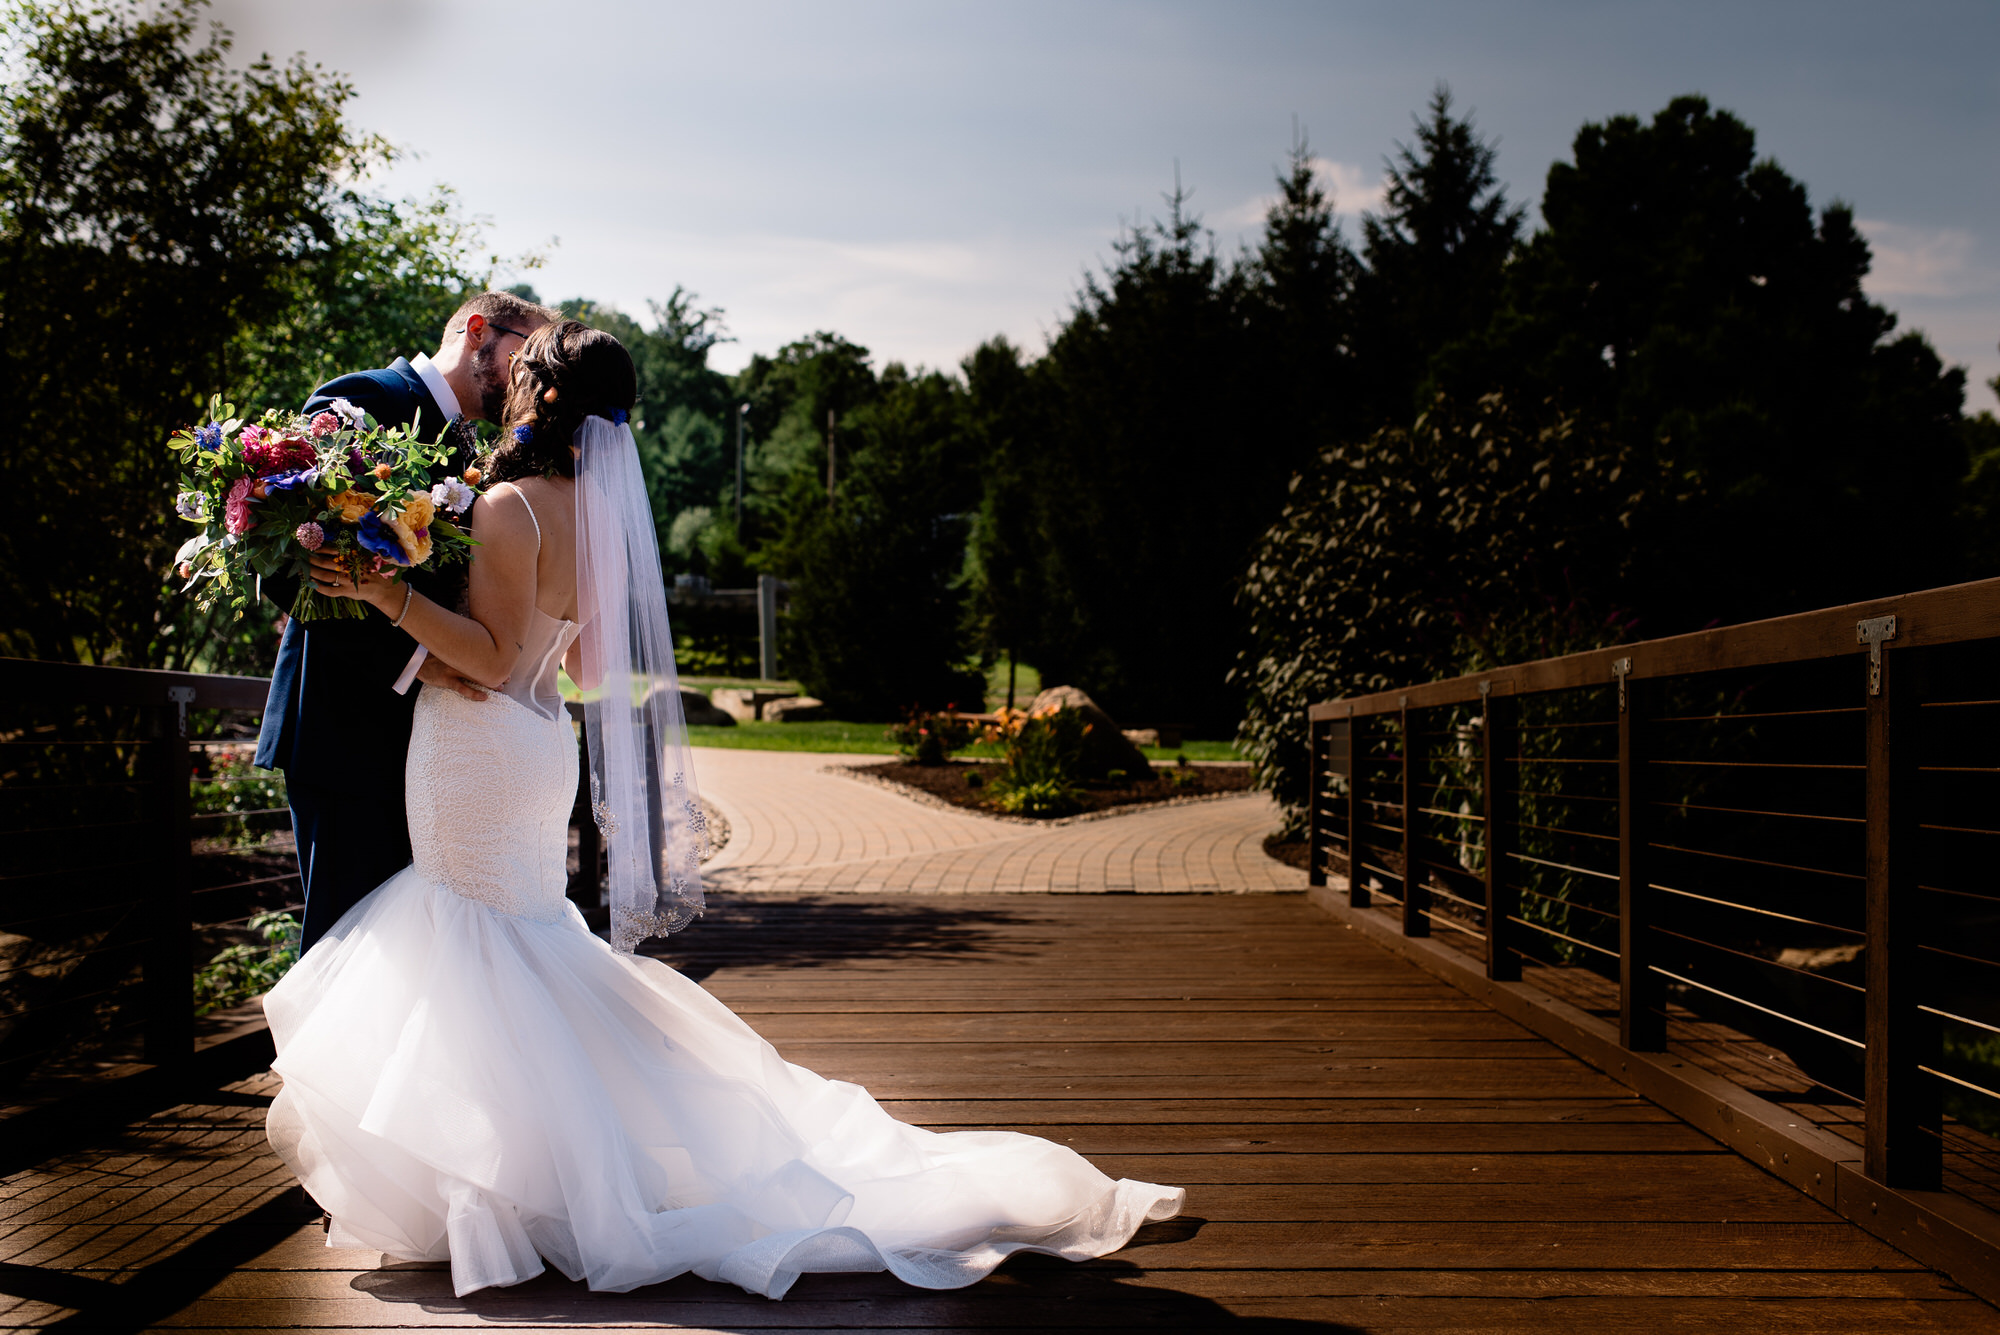 Bear_Creek_Mountain_Wedding_030.jpg